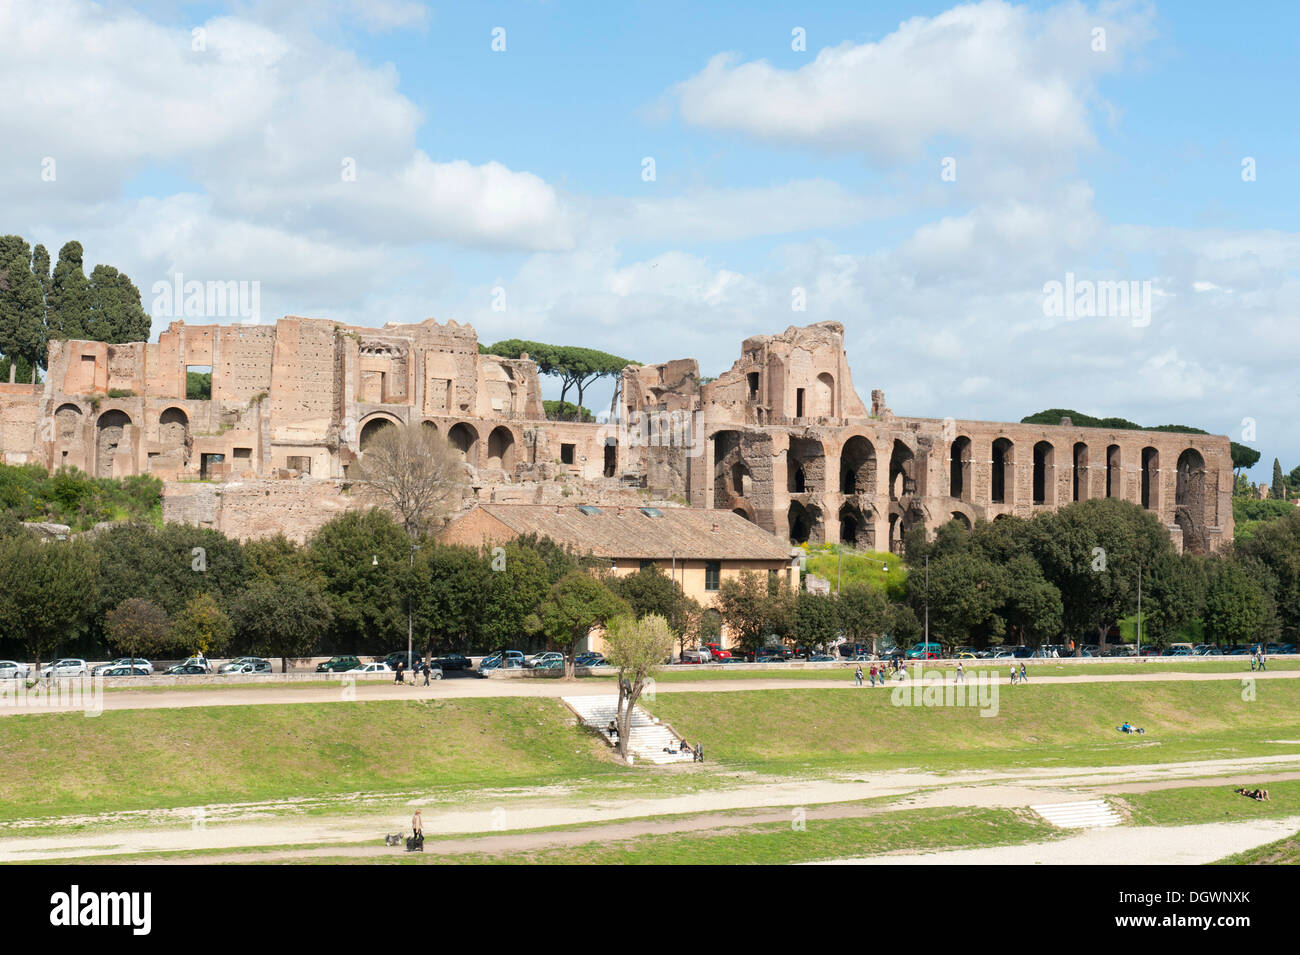 Roman antiquity, view across the large empty space of the Circus Maximus to the Palatine Hill, Circo Massimo, ancient Rome - Stock Image